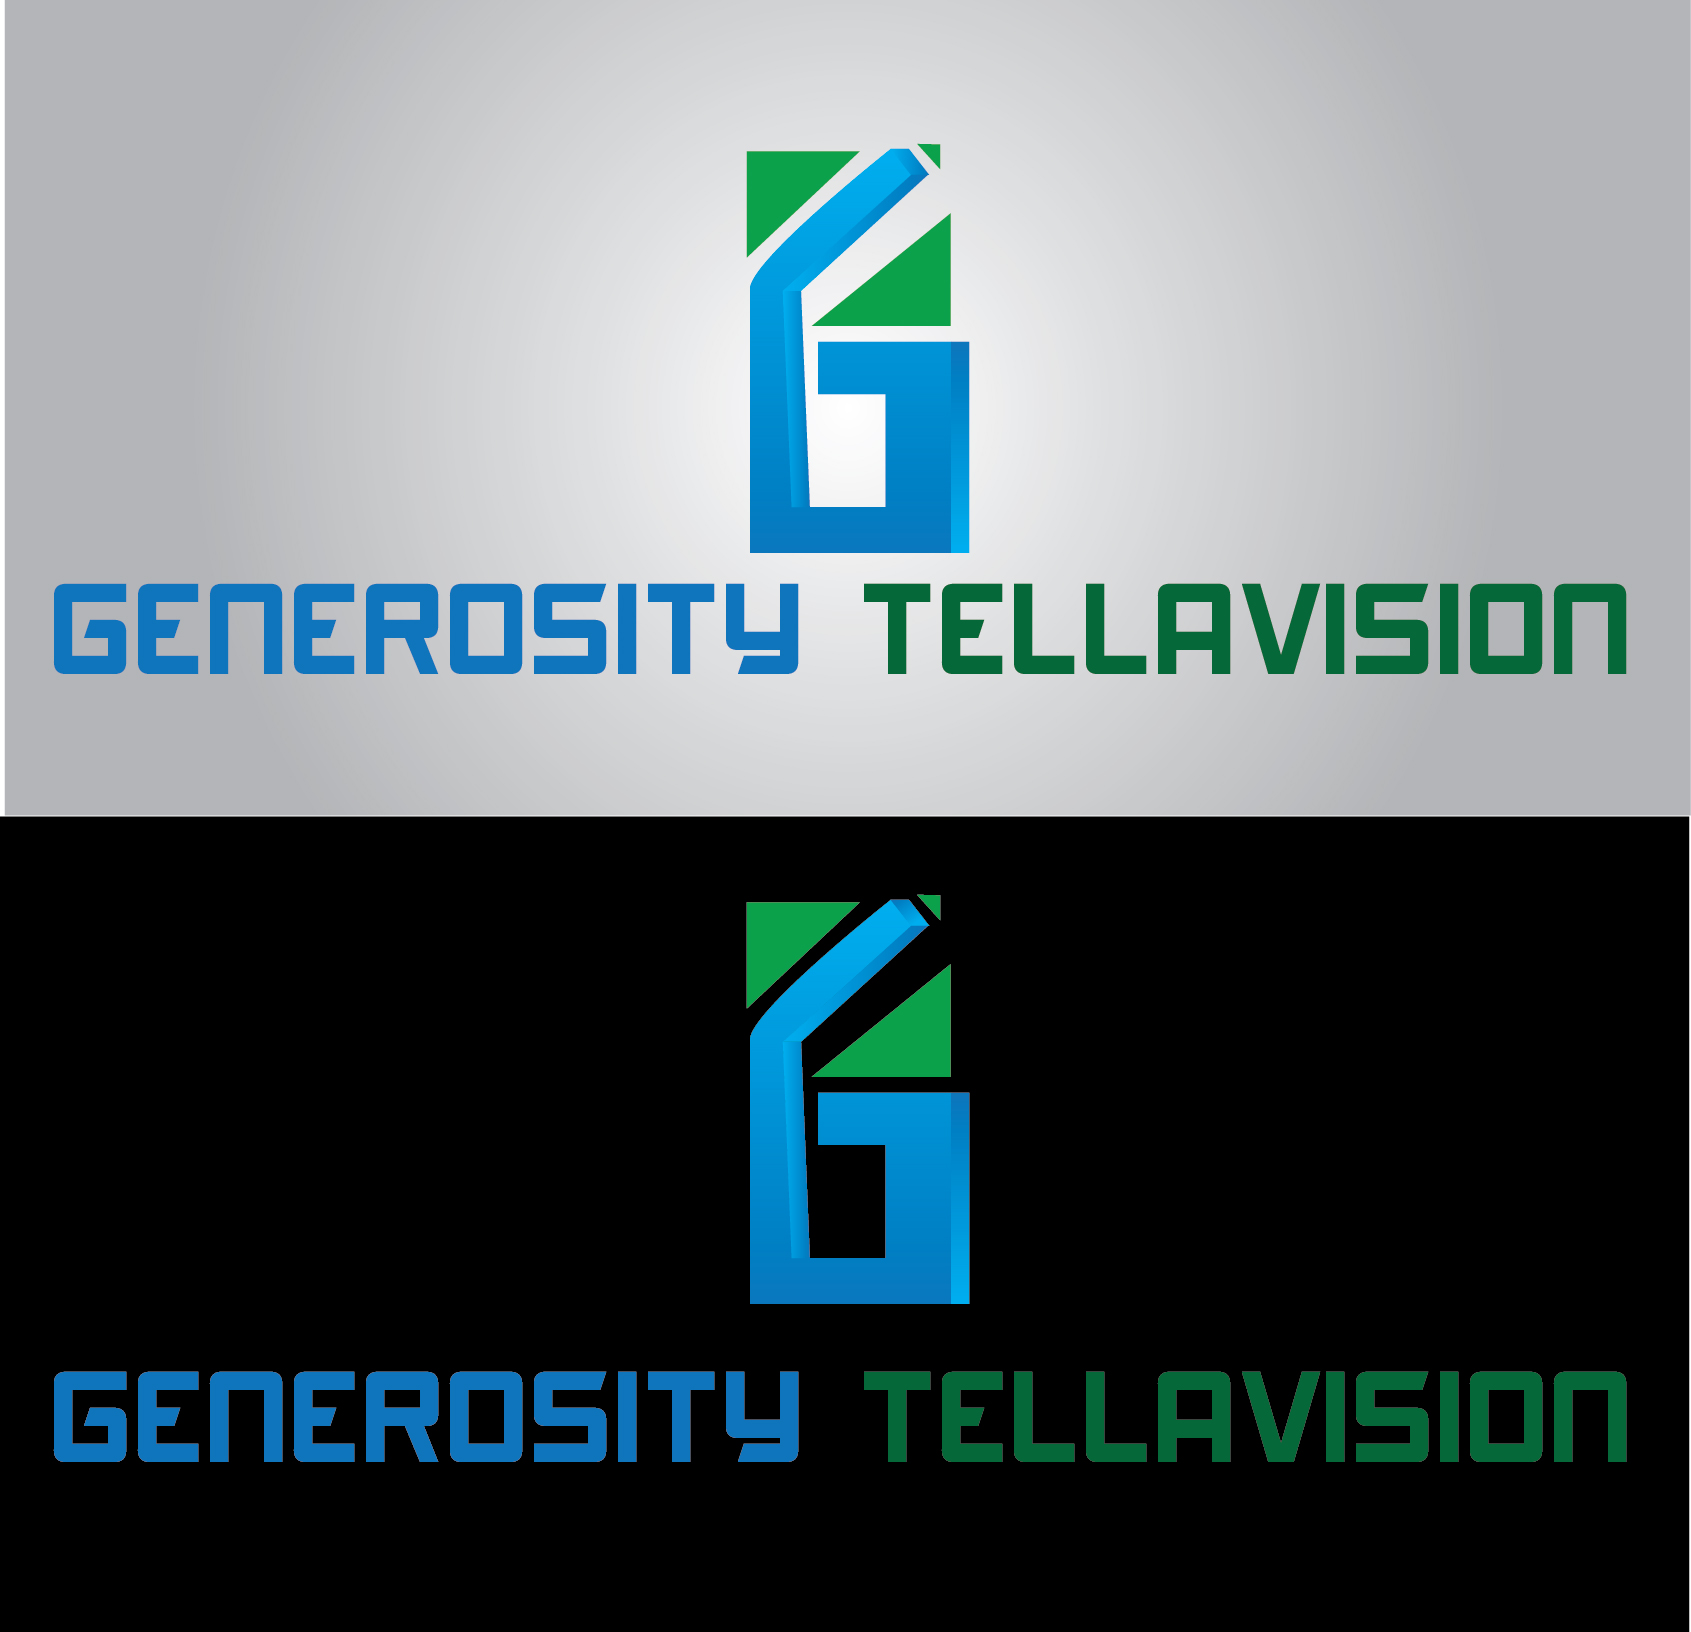 Logo Design by mediaproductionart - Entry No. 67 in the Logo Design Contest Artistic Logo Design for Generosity TellAVision.